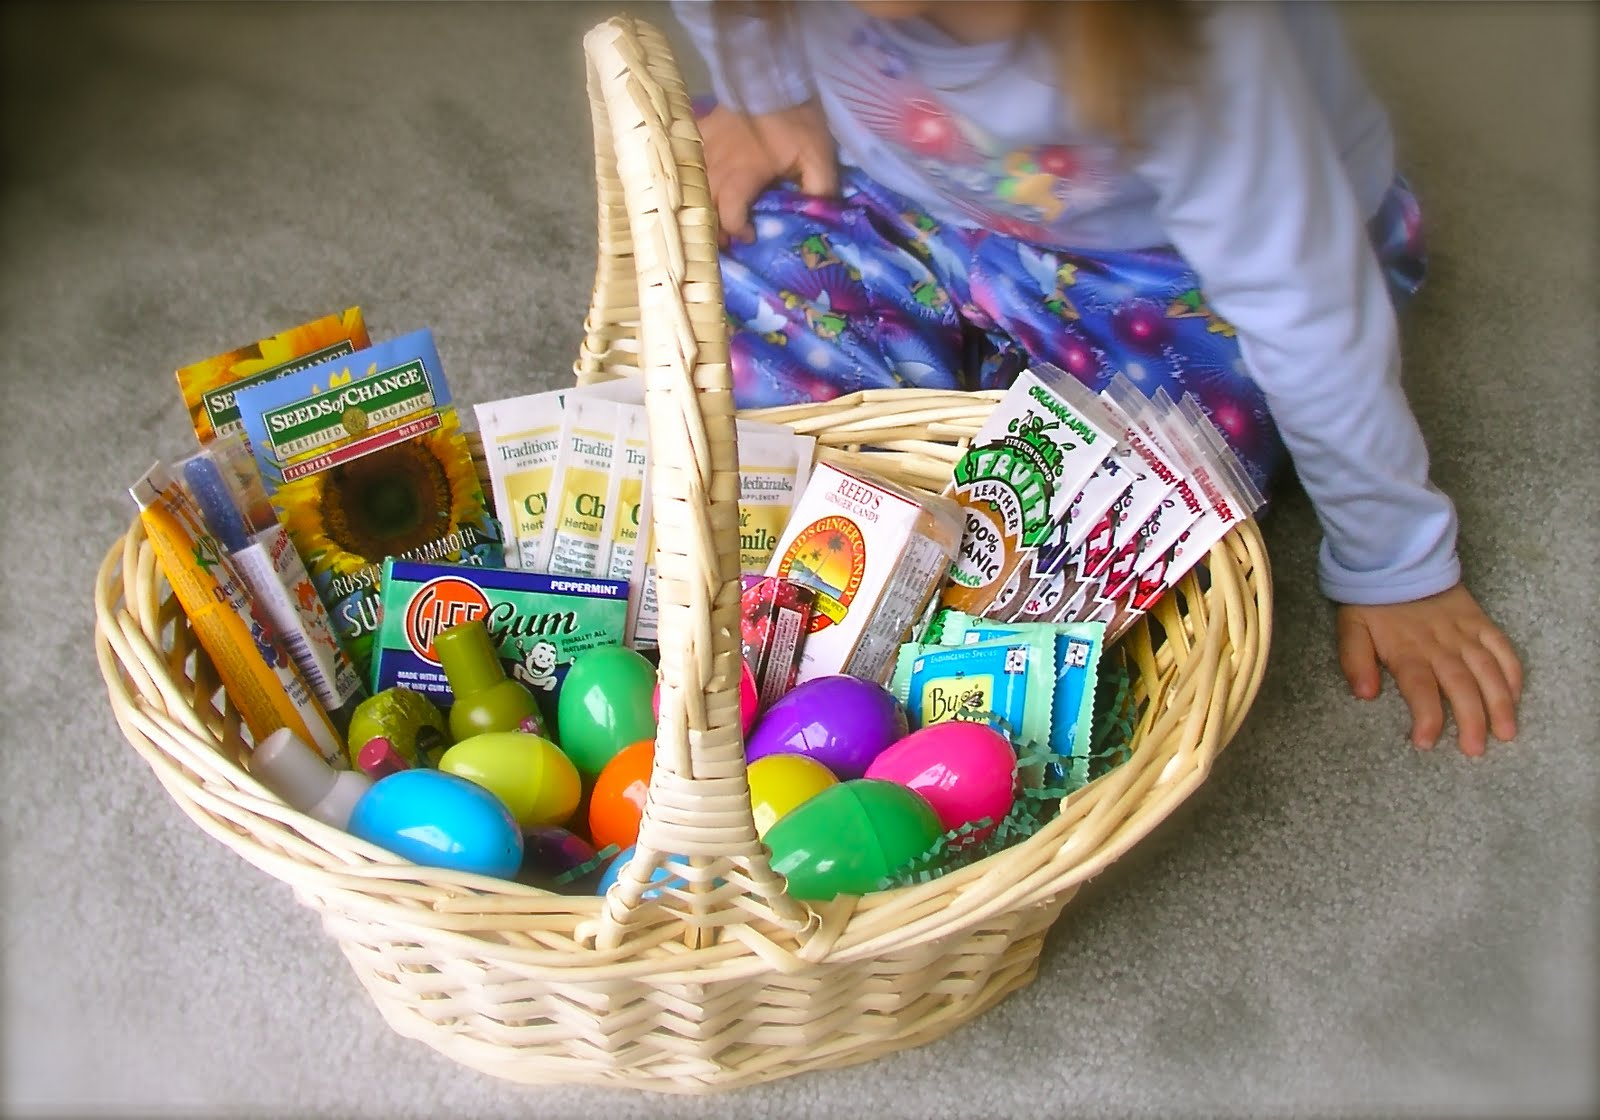 Nourishing meals healthy easter basket ideas healthy easter basket ideas negle Gallery